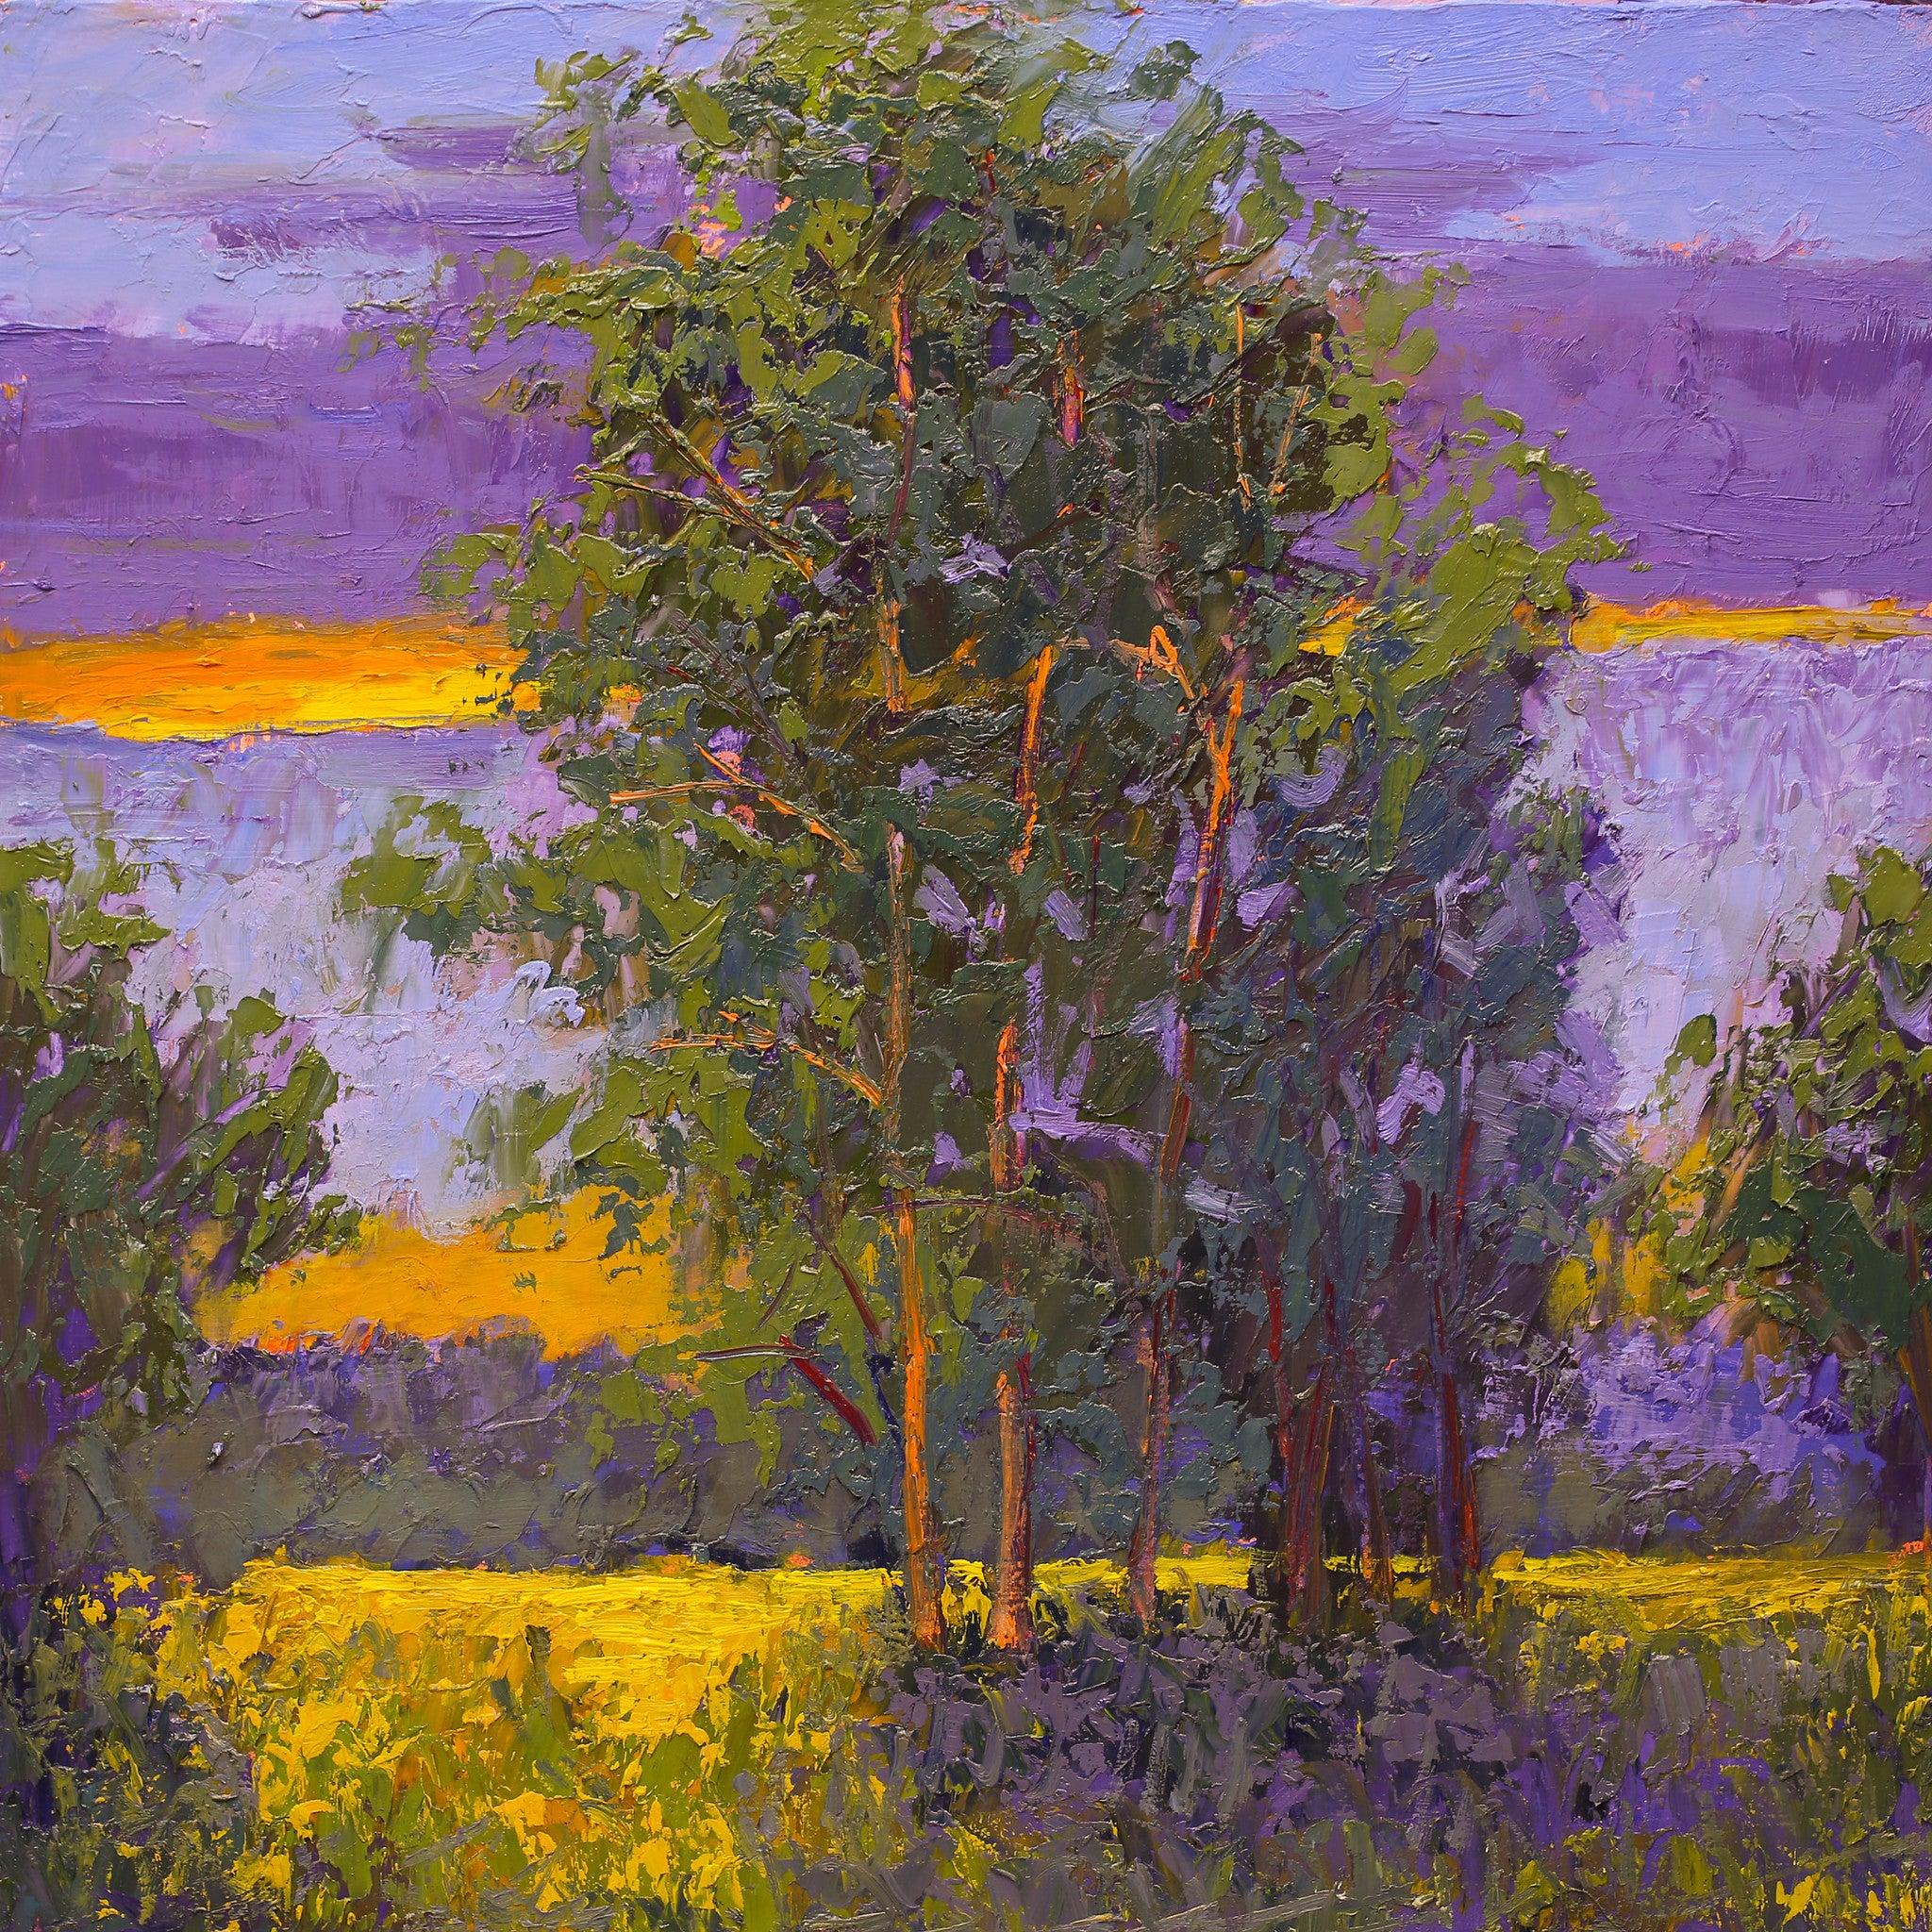 """Summer Dawn""  Kevin Liang 2019  Original oil on board with frame 18"" x 18"""